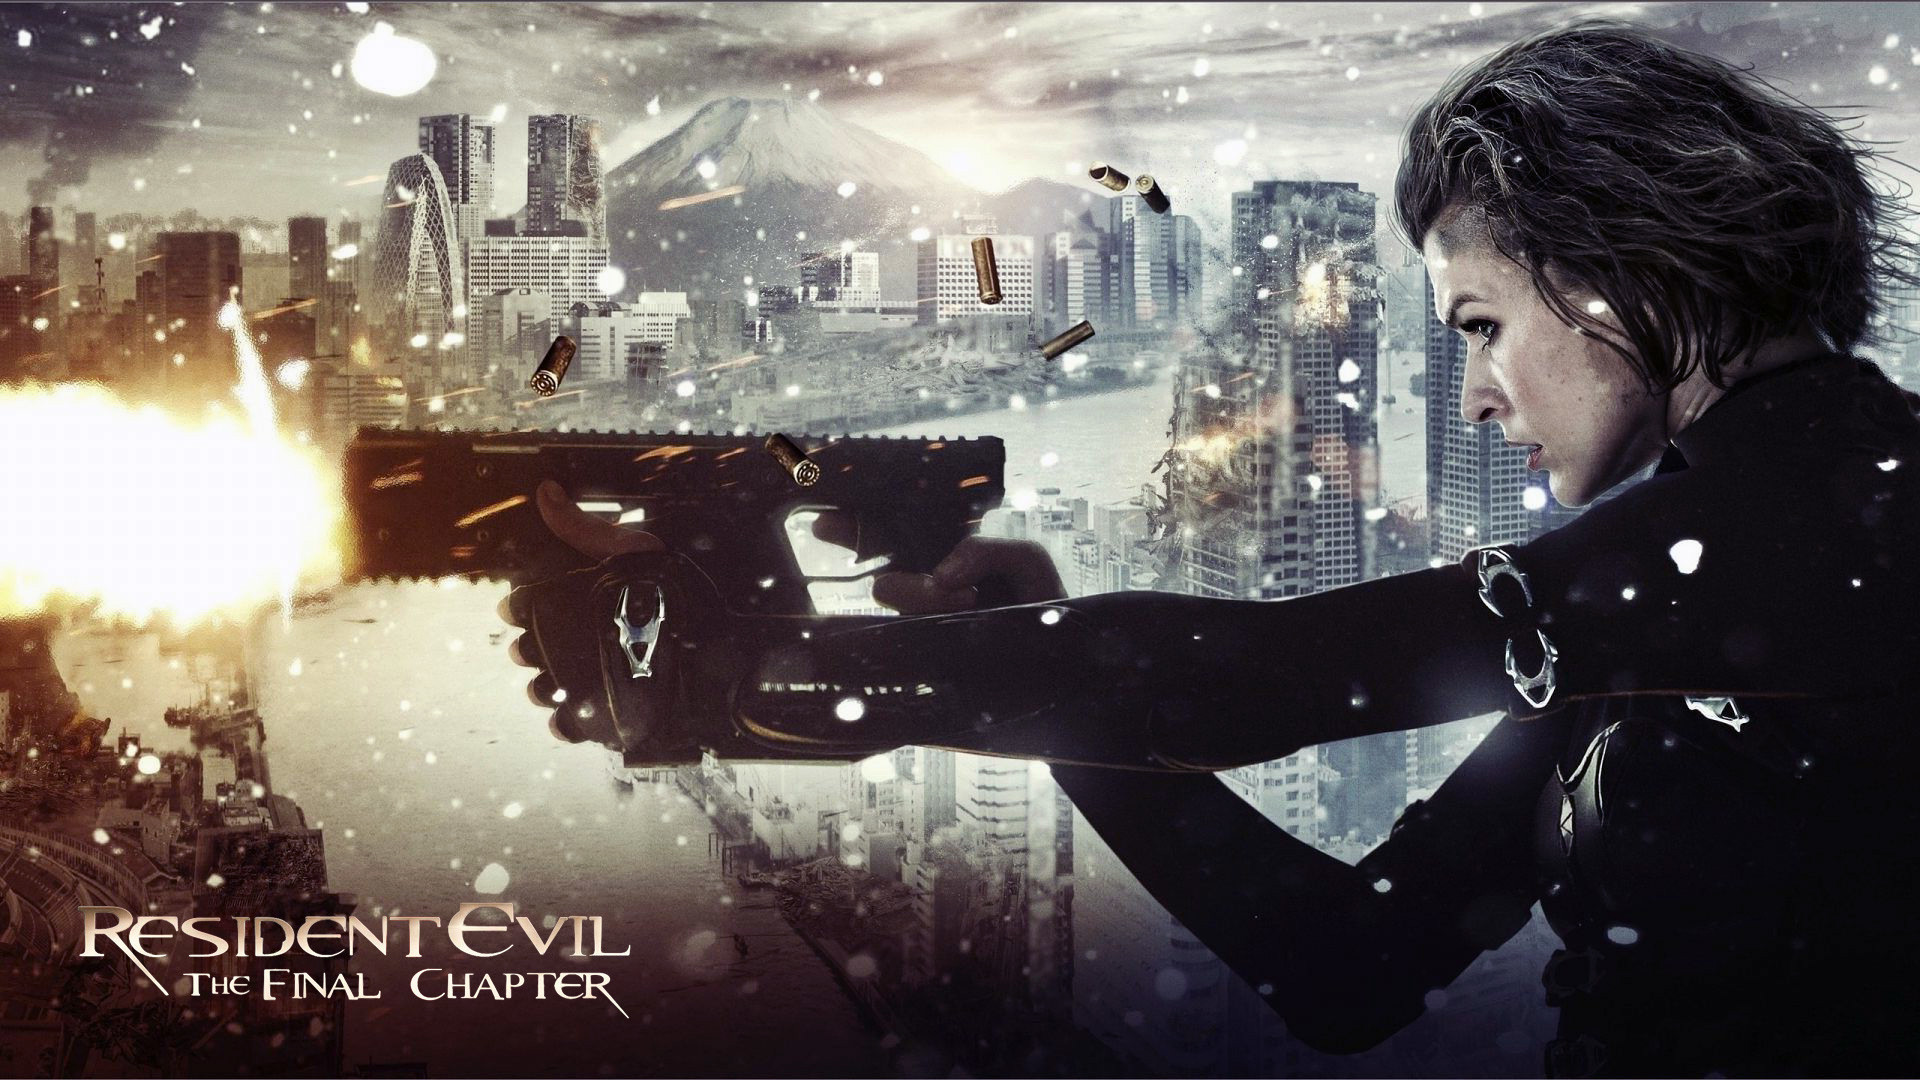 1920x1080 Resident Evil 6 The Final Chapter